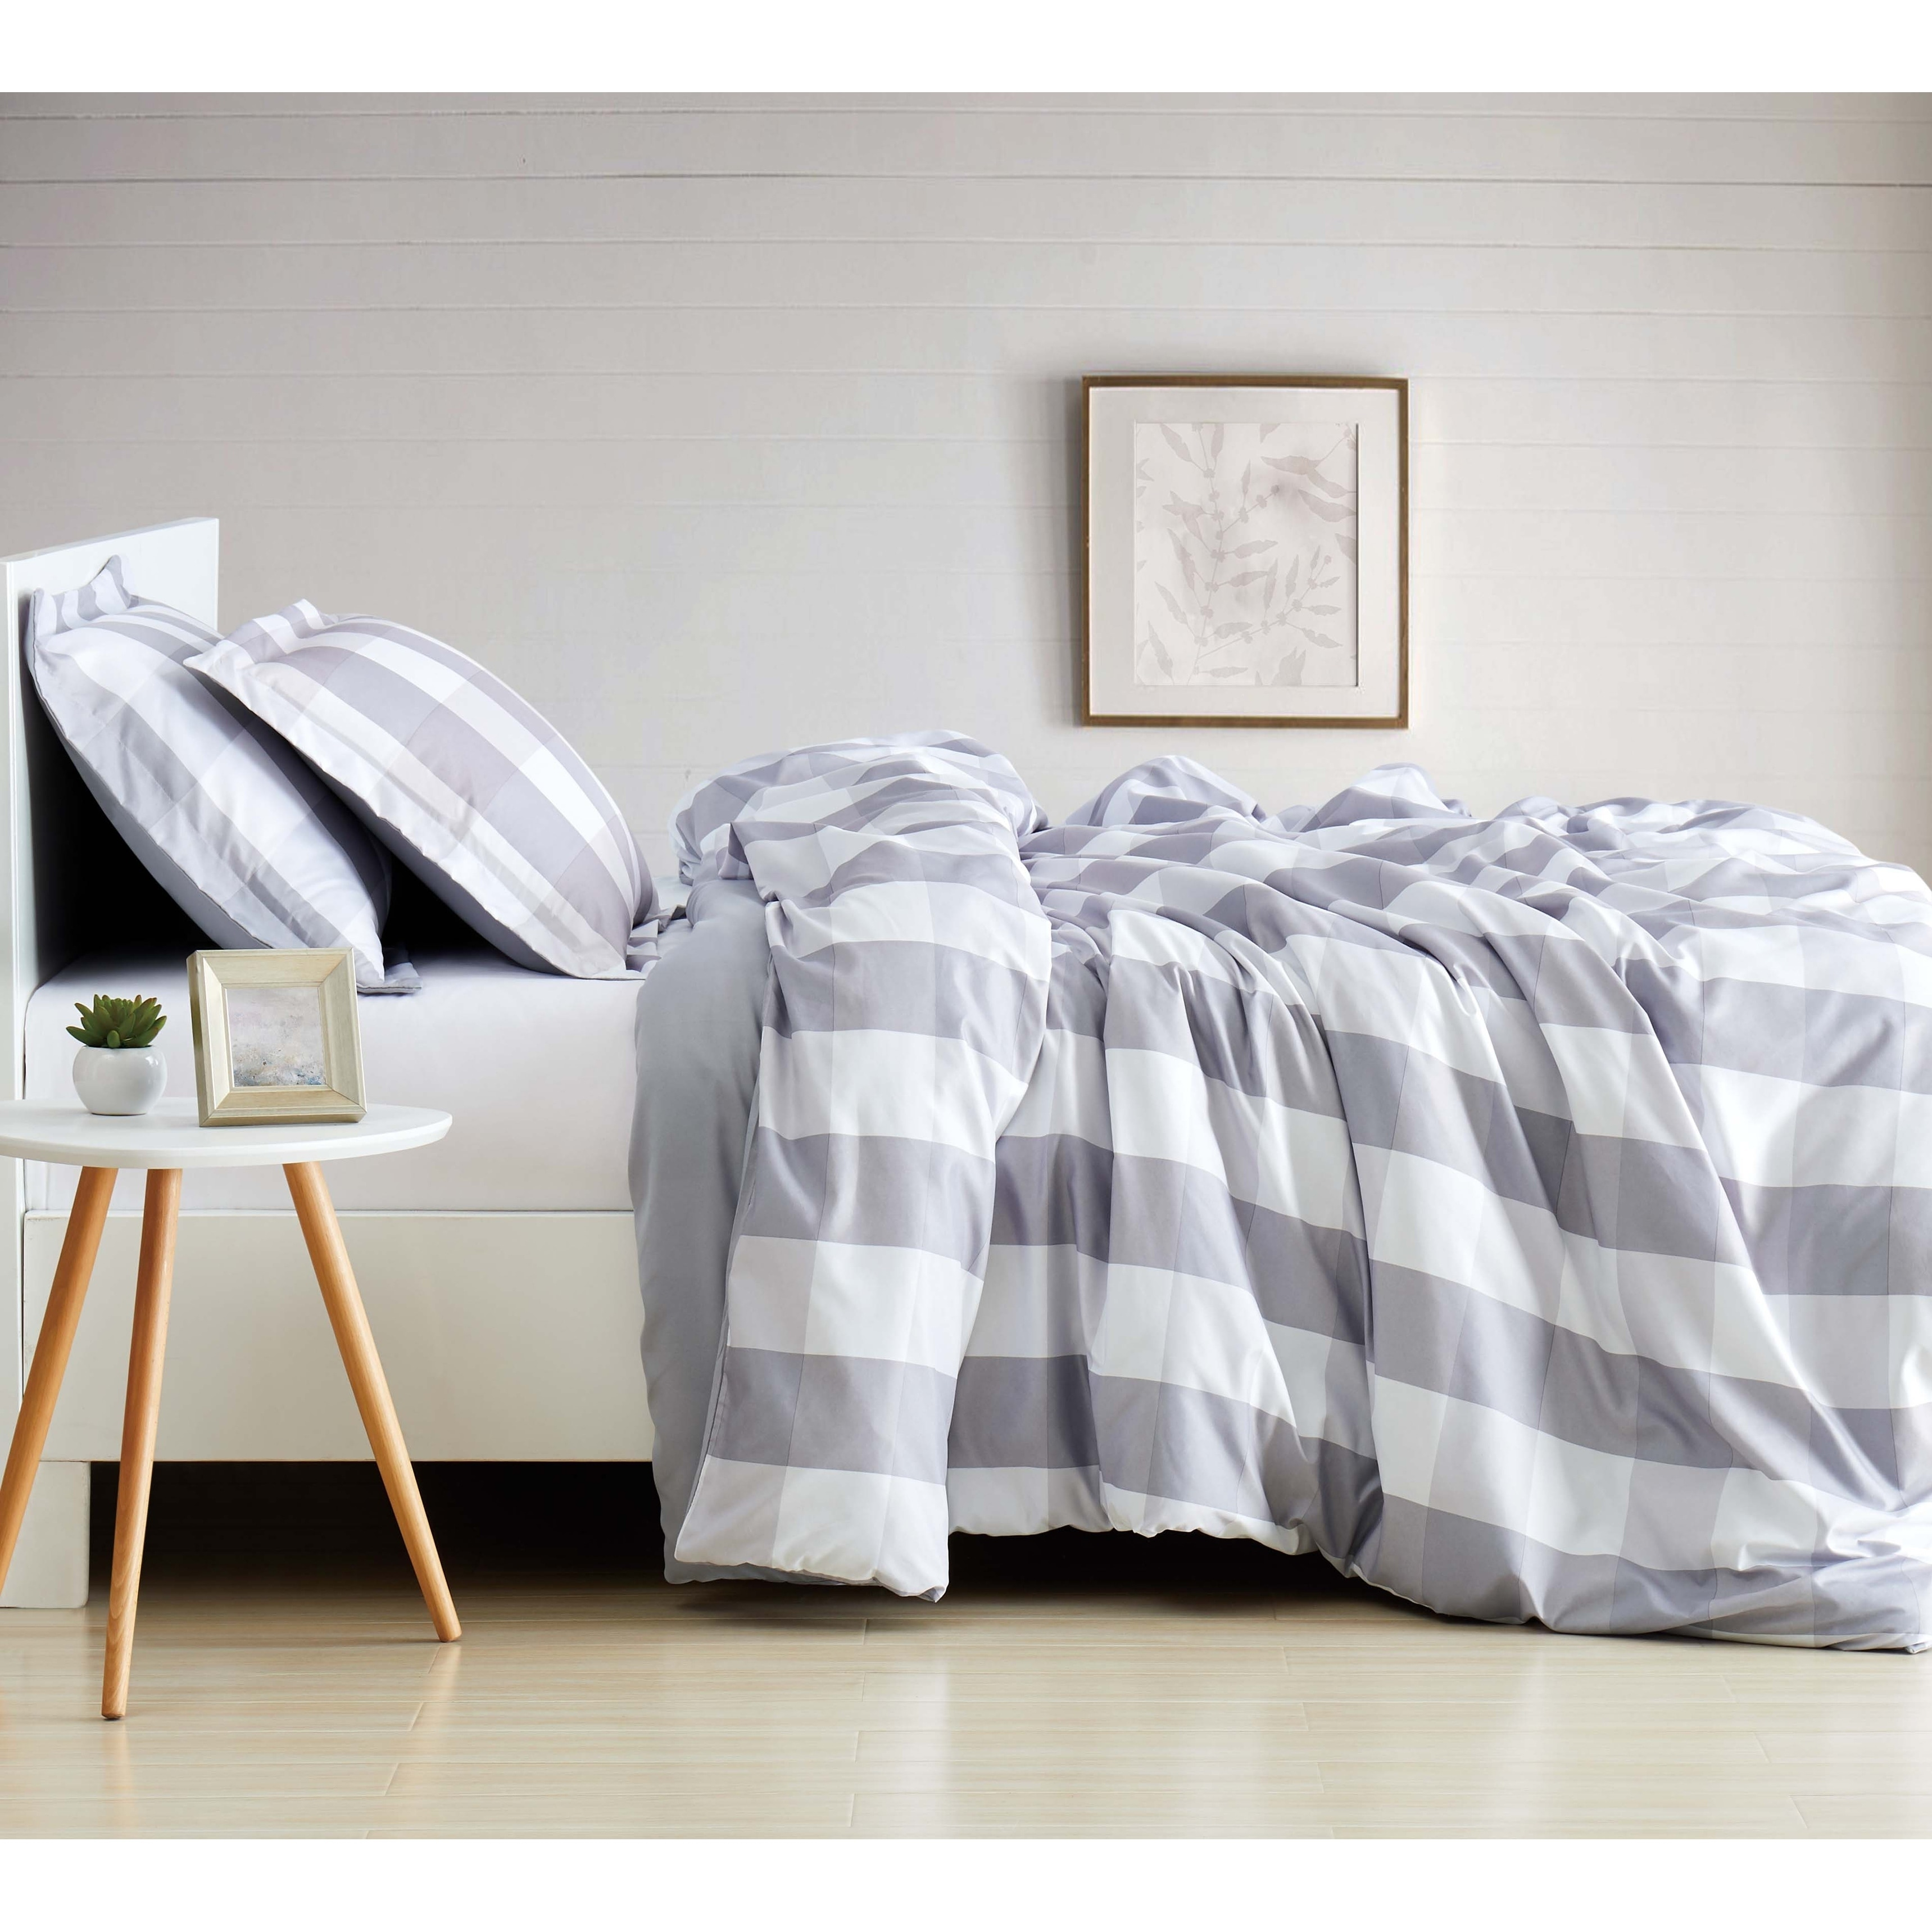 Soft Duvet Covers Details About Truly Soft Everyday Buffalo Plaid Printed Duvet Cover Set